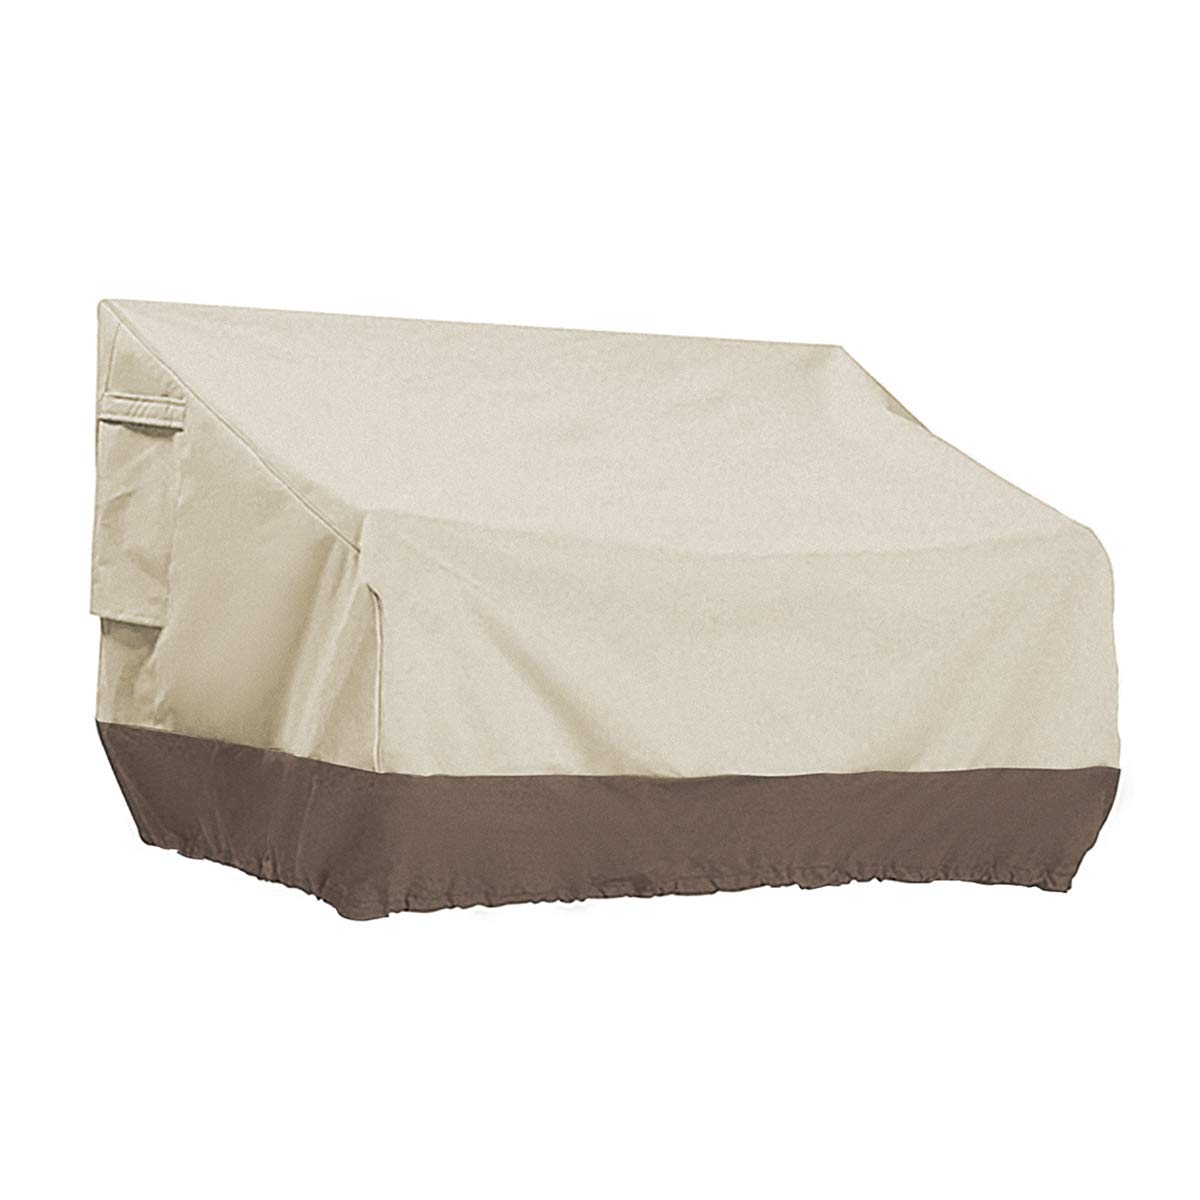 PHI VILLA Patio Bench Cover-Outdoor Loveseat Lounge Cover, Small by PHI VILLA